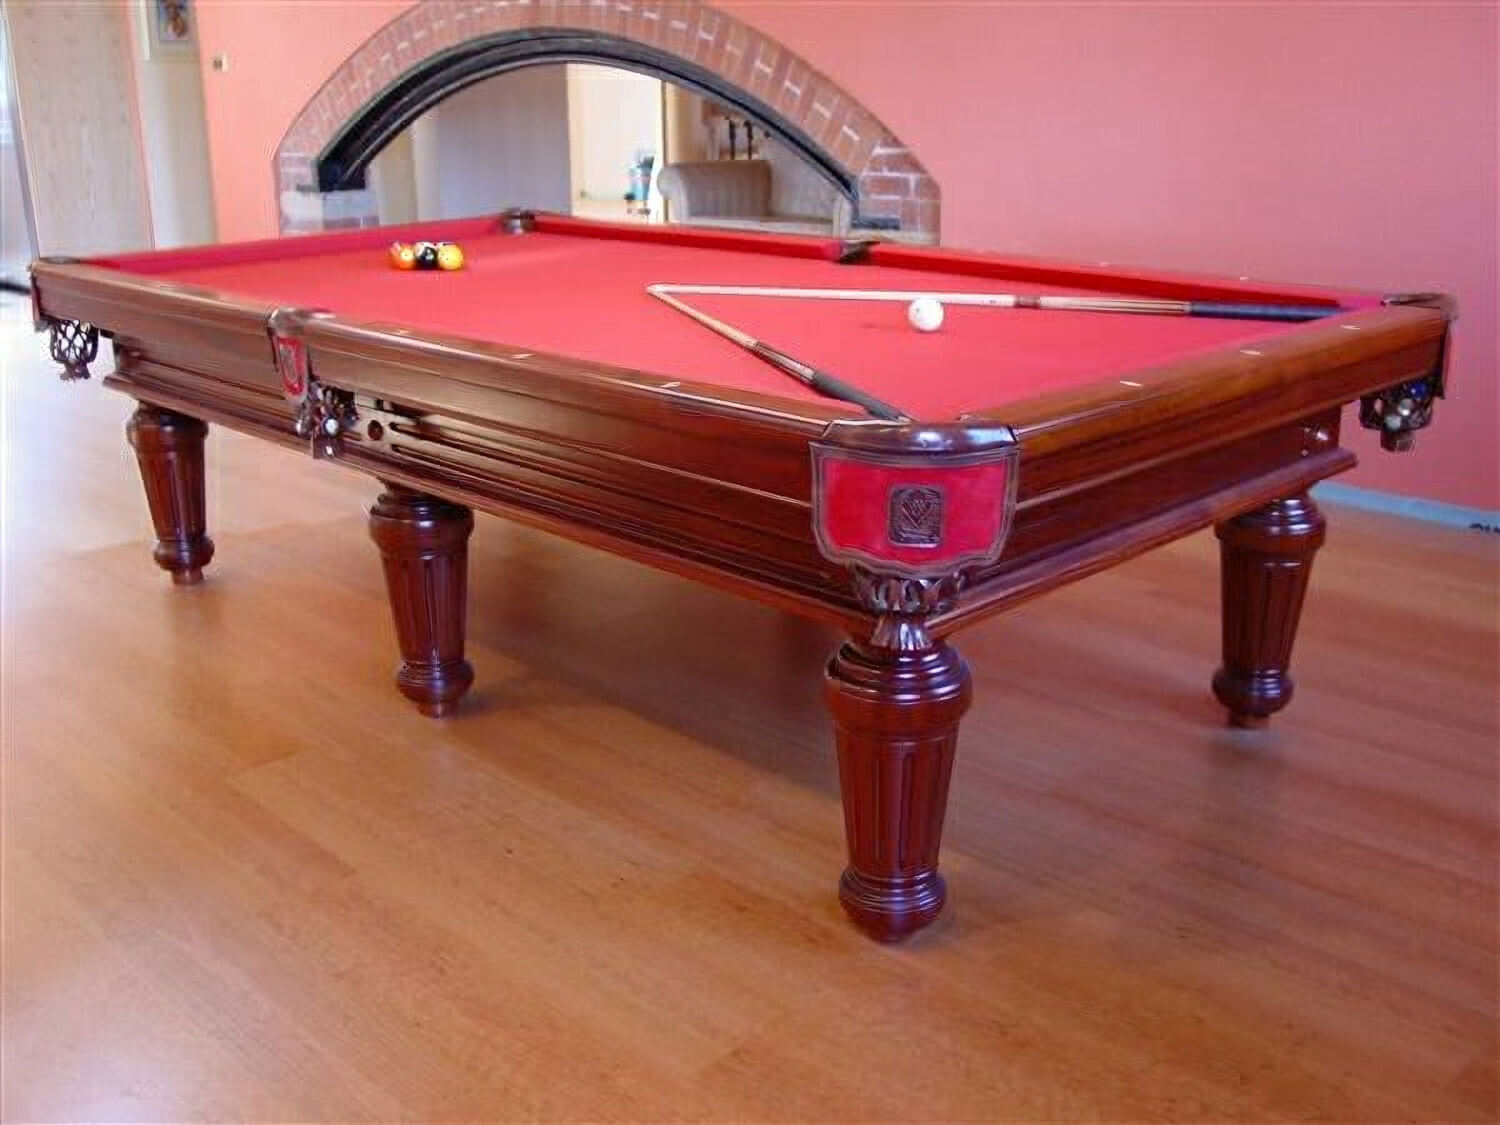 Regenta american slate bed pool table 9 ft liberty games - Traditionele bed tafel ...